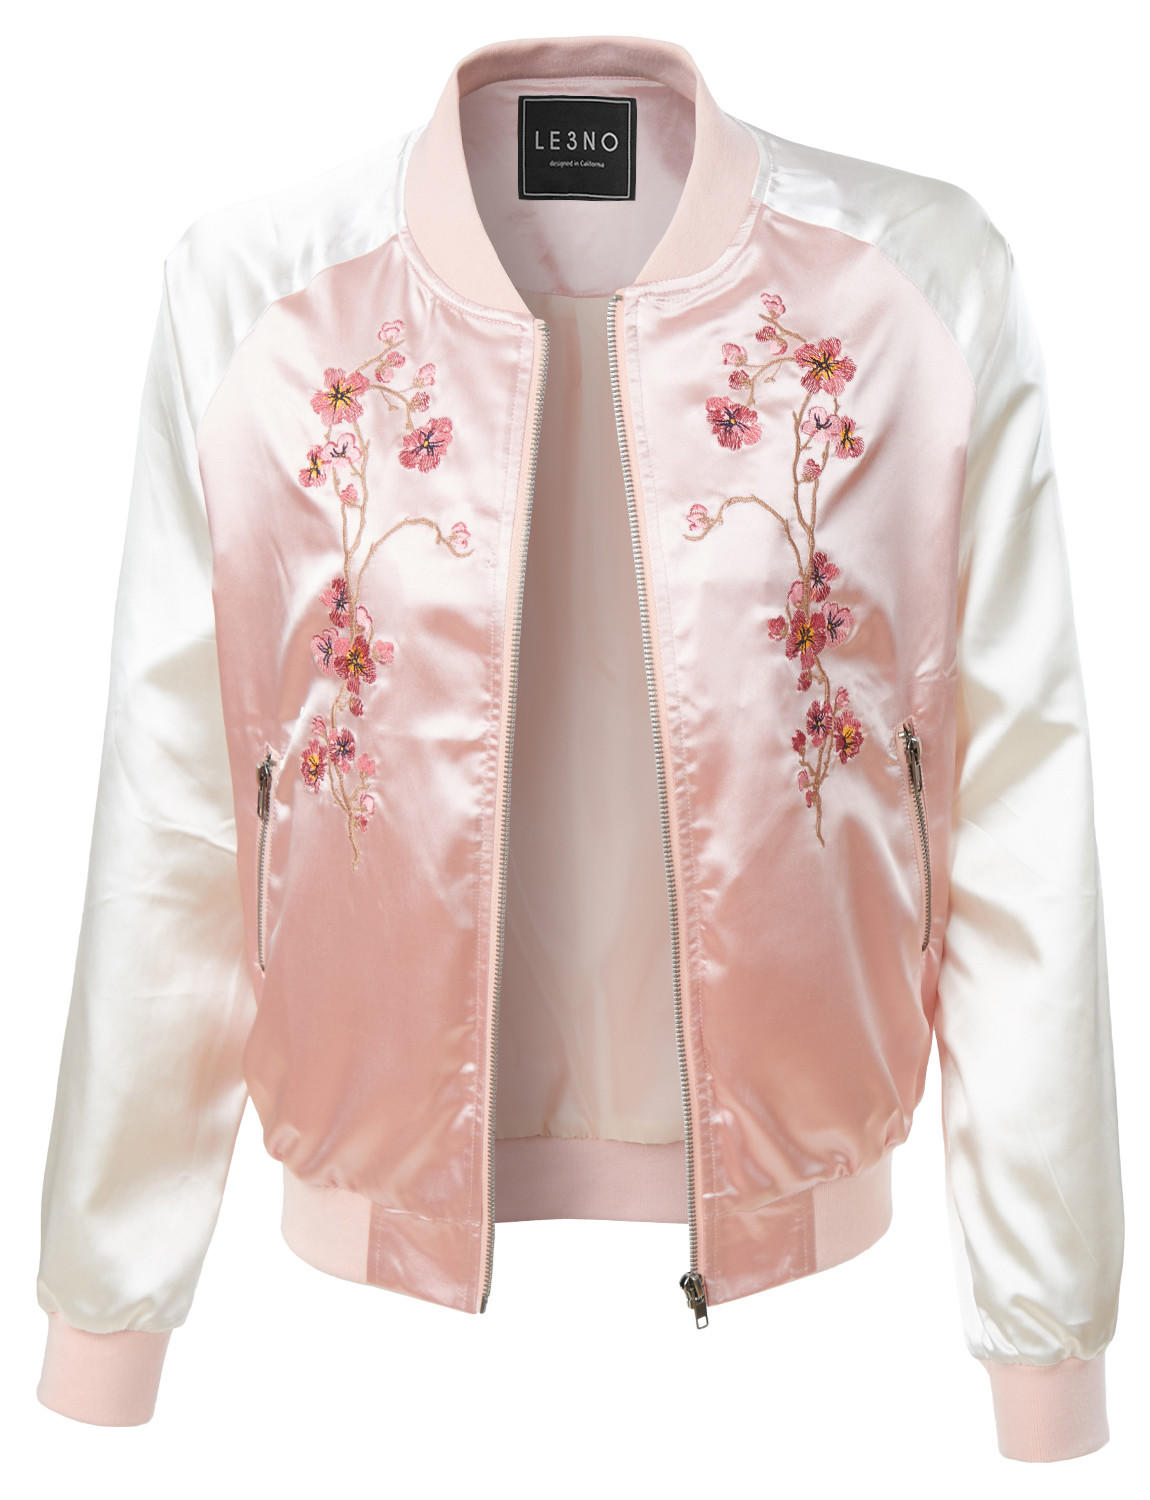 607d535ff LE3NO Womens Lightweight Satin Floral Embroidery Zip Up Bomber Jacket  (CLEARANCE)